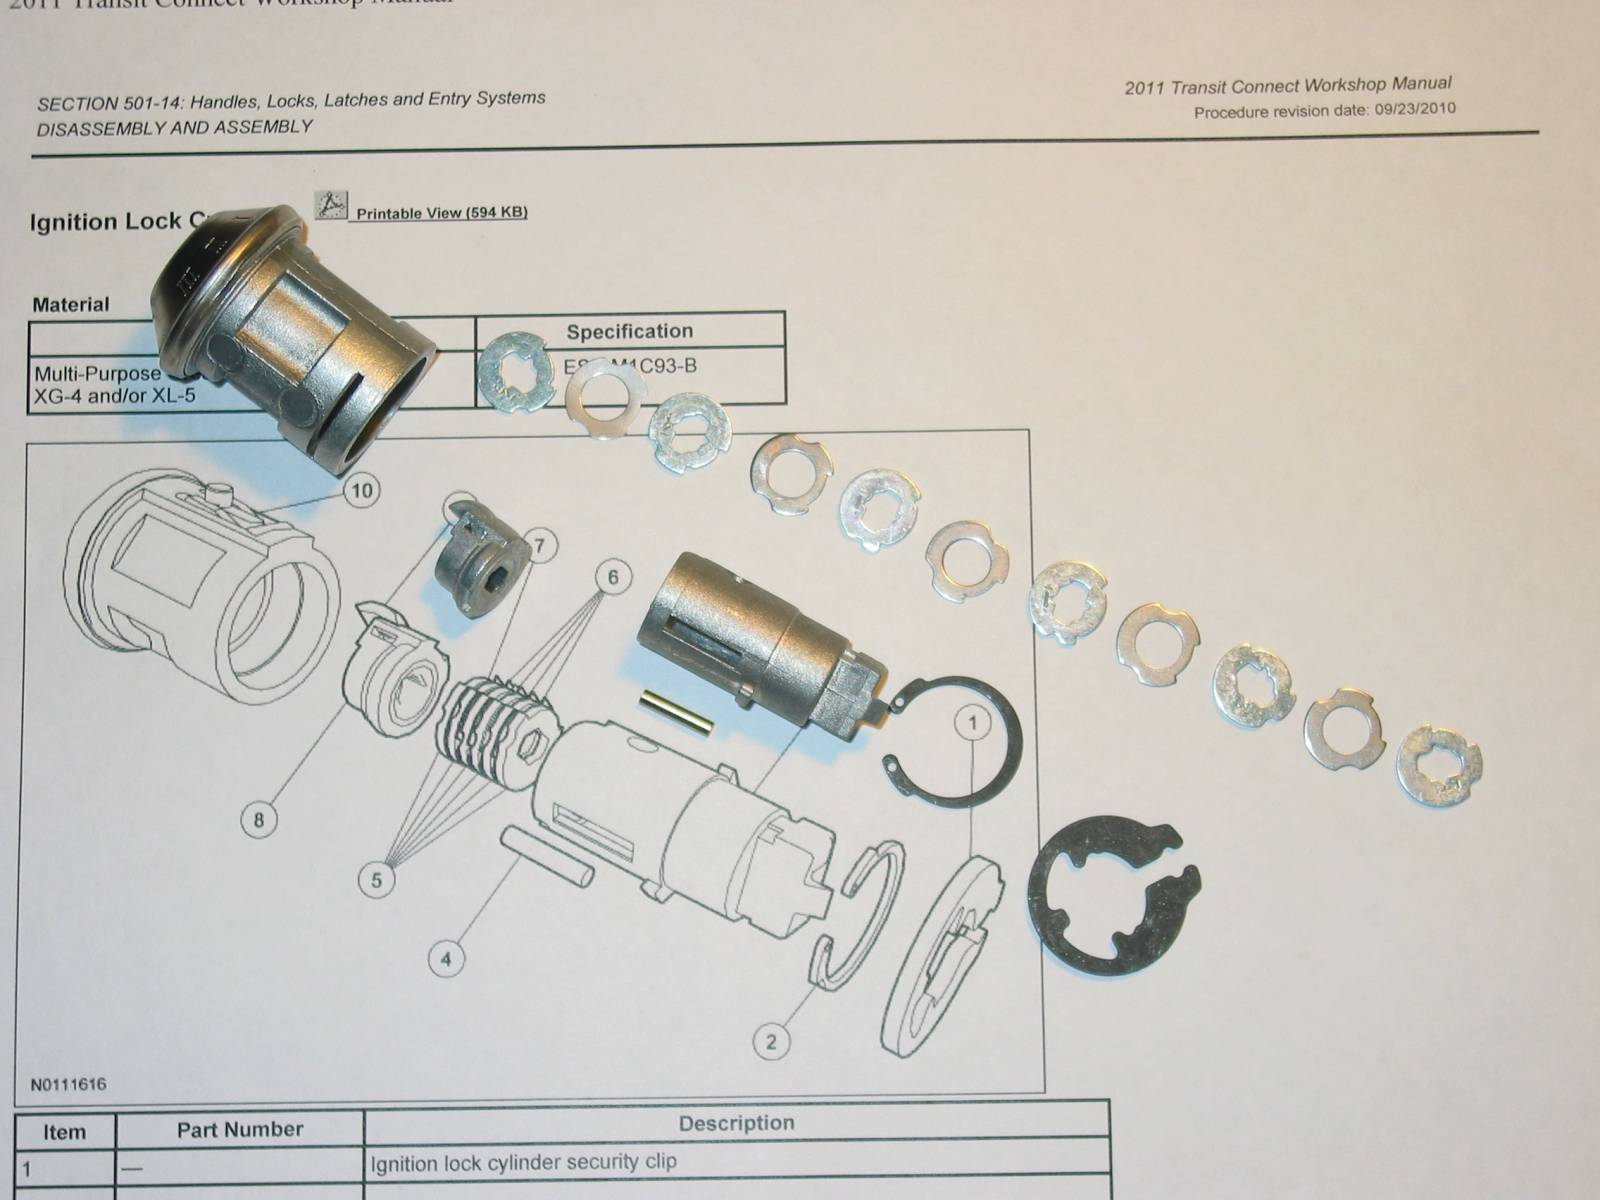 Assembling Replacement Ignition Cylinder For 2011 Ford